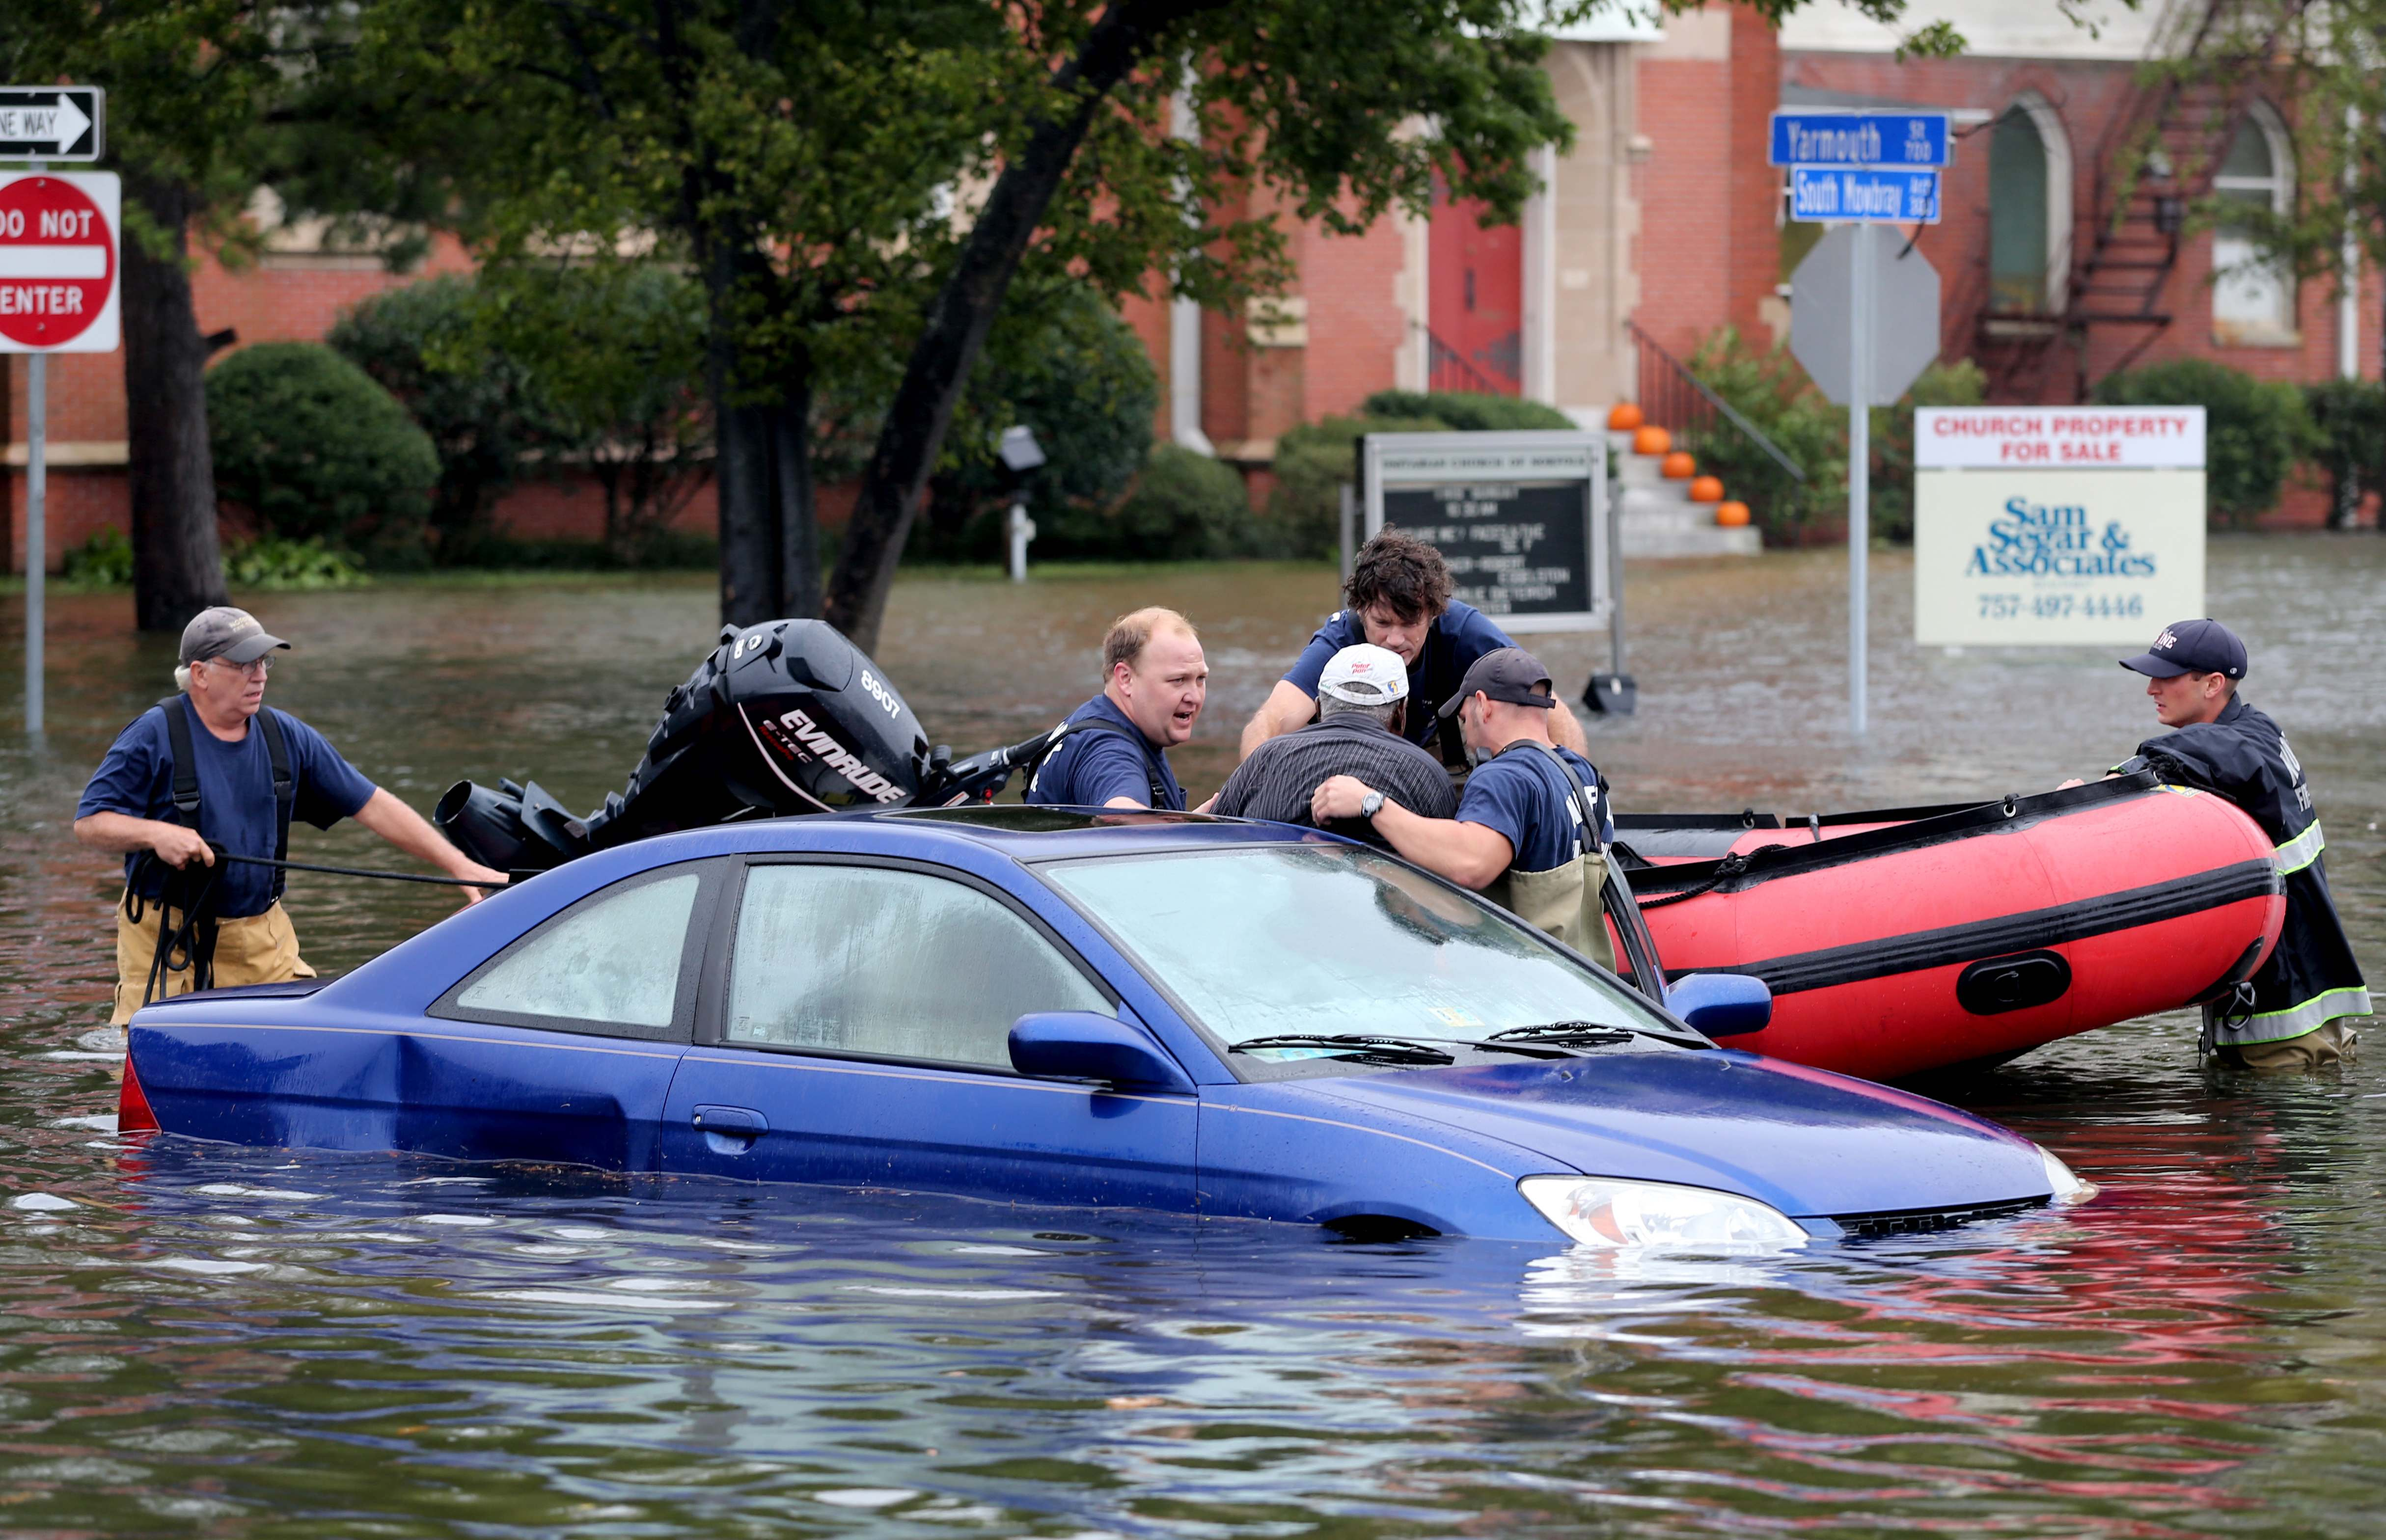 Members of Norfolk Fire-Rescue pull a man from his car stranded because of flooding in Norfolk, Va., on Sunday, Oct. 4, 2015.